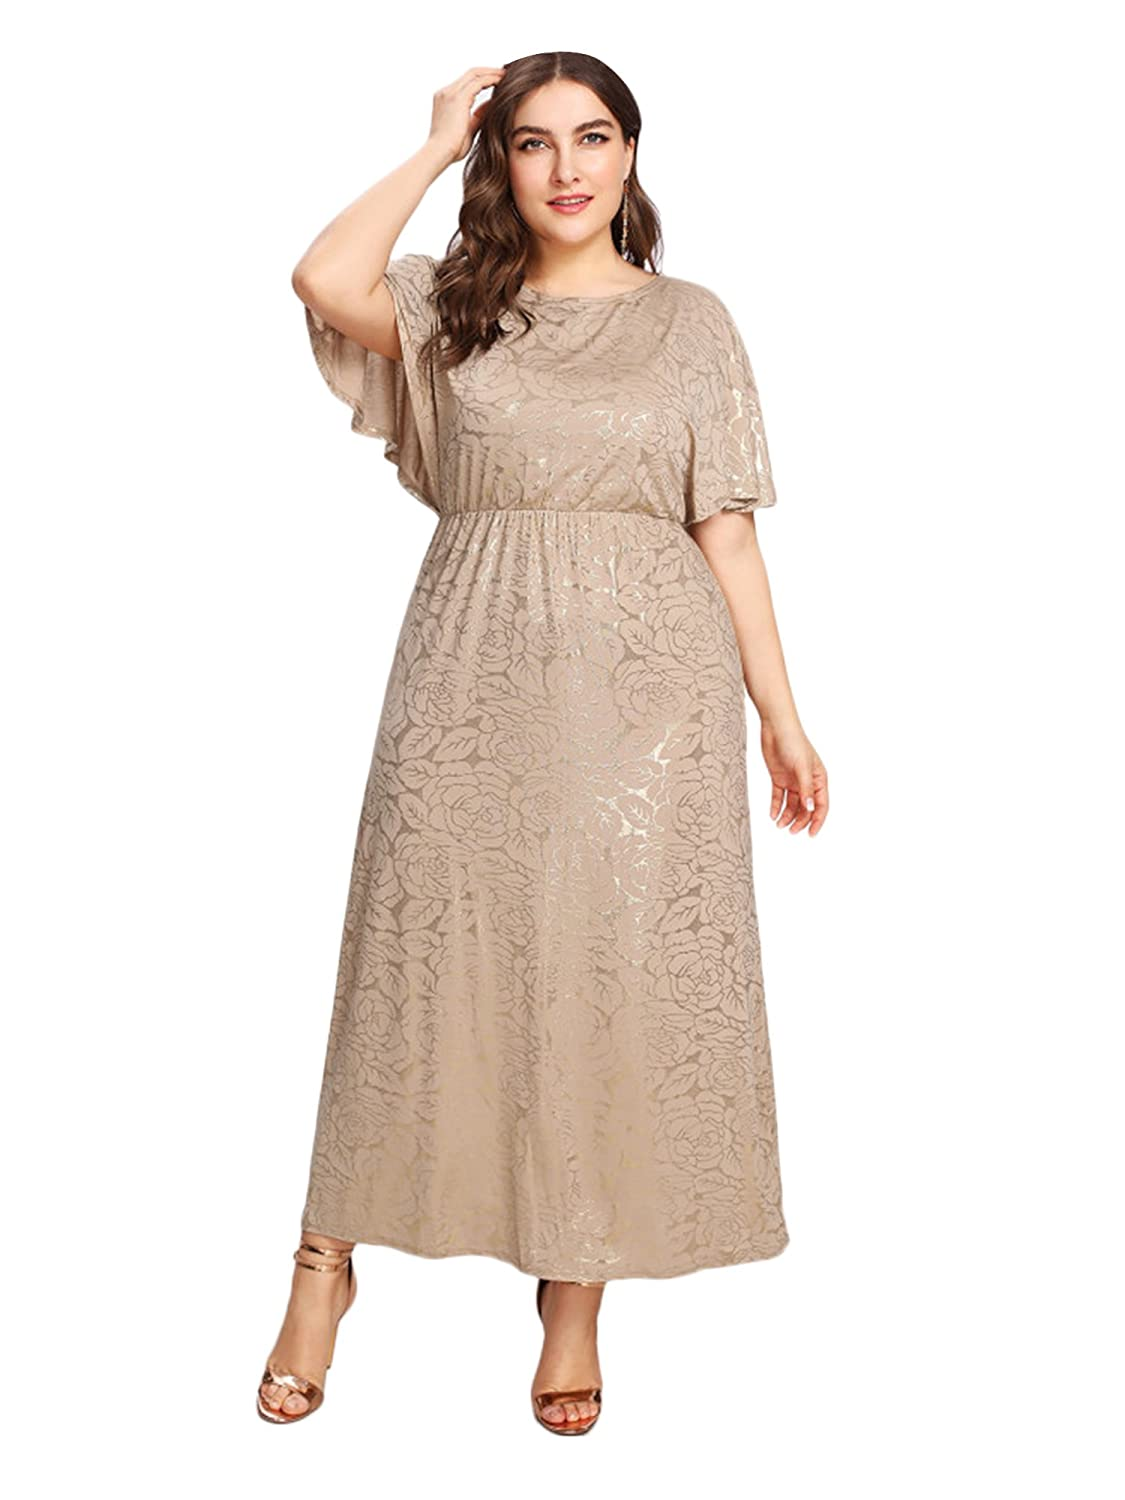 46c1efab05f ESPRLIA Women s Plus Size Sequin Party Club Cocktail Maxi Night Gowns Dress  at Amazon Women s Clothing store